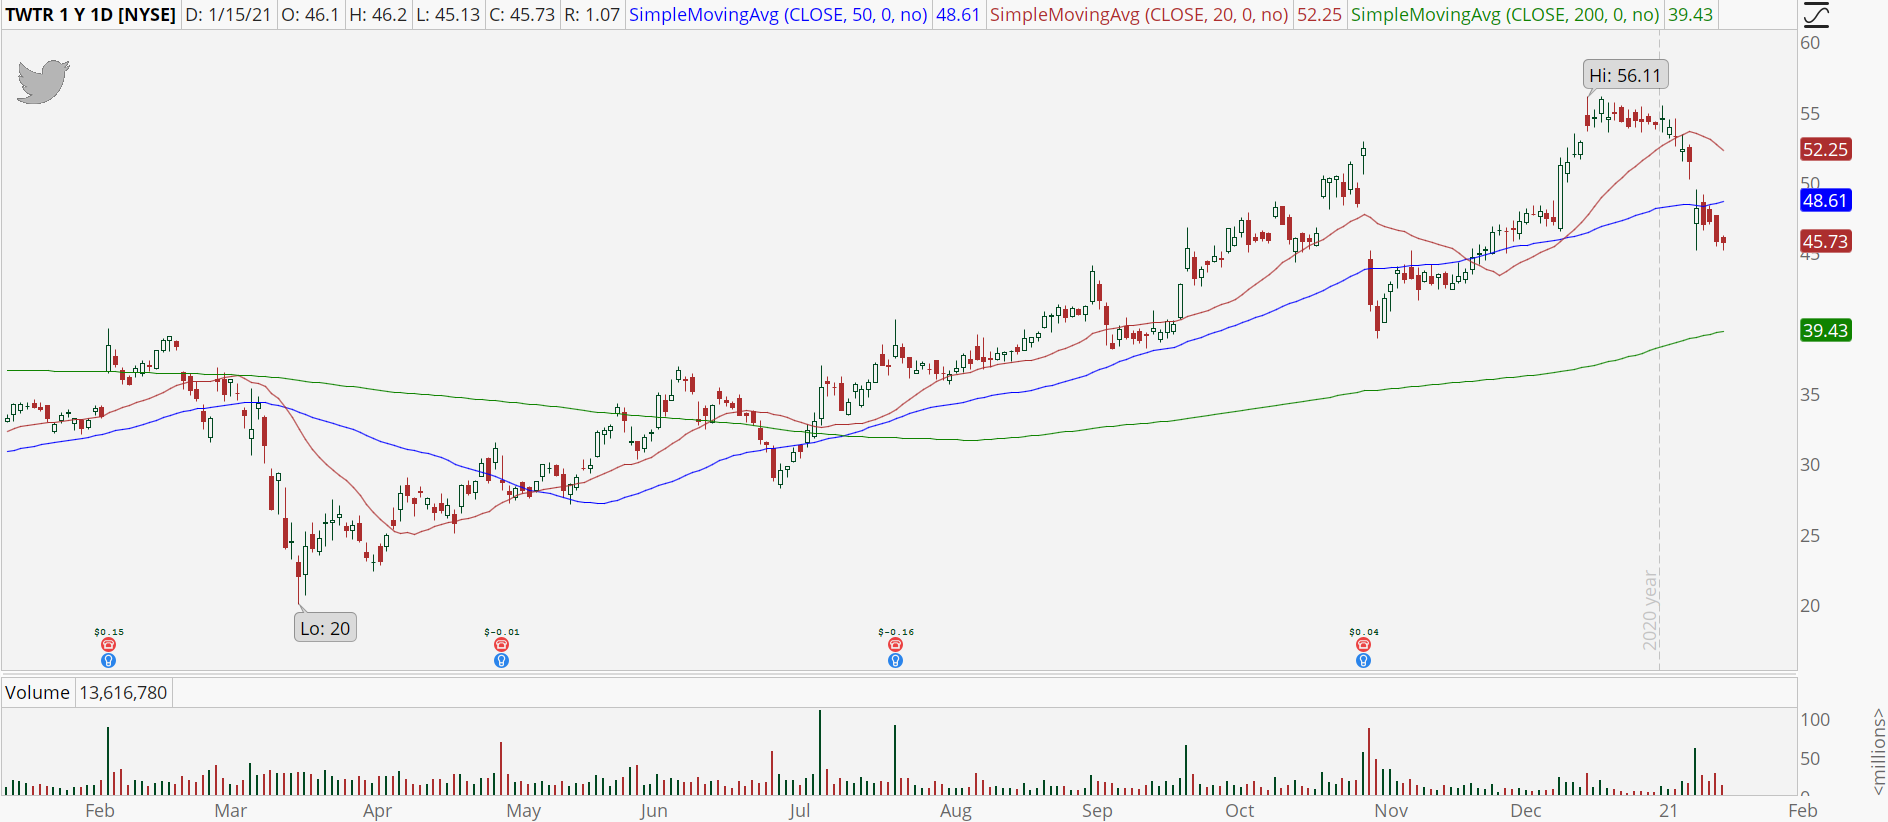 Twitter (TWTR) stock chart with break of 50-day moving average